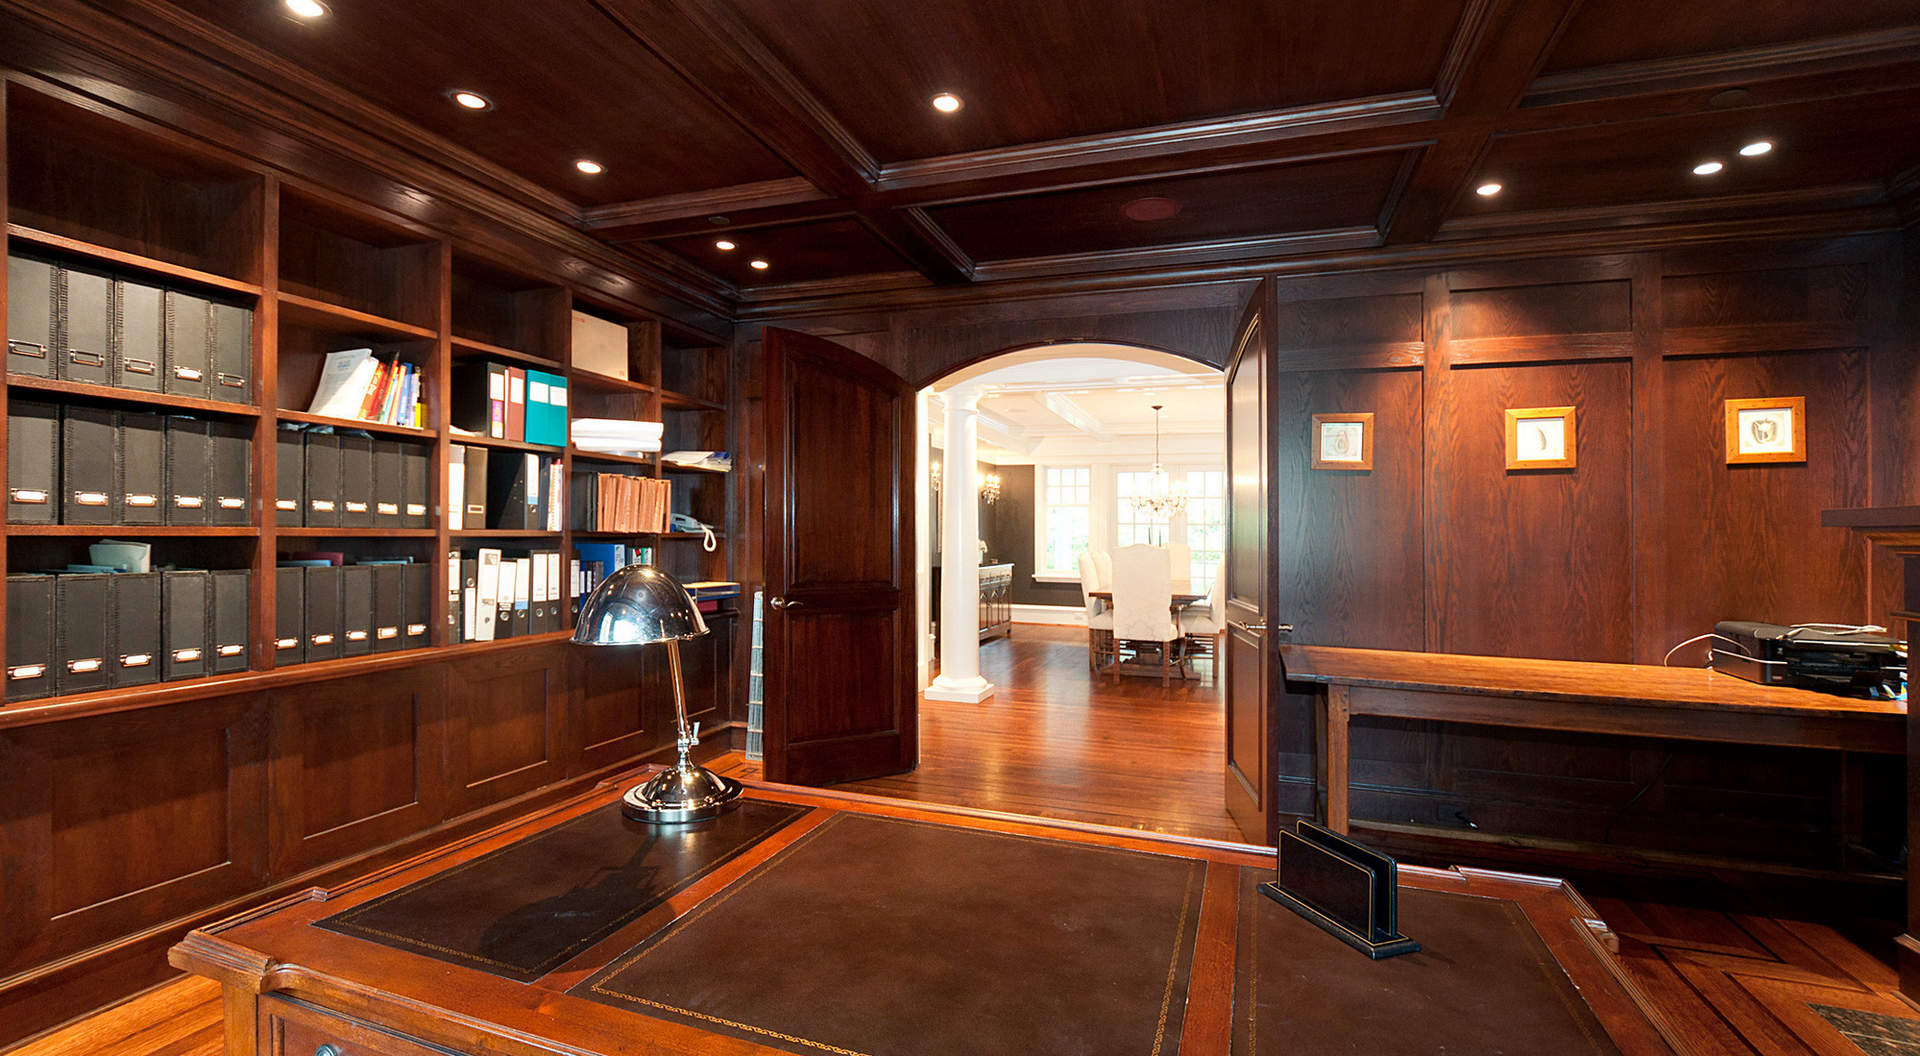 Sophisticated Study with Paneled Walls and Coffered Ceilings